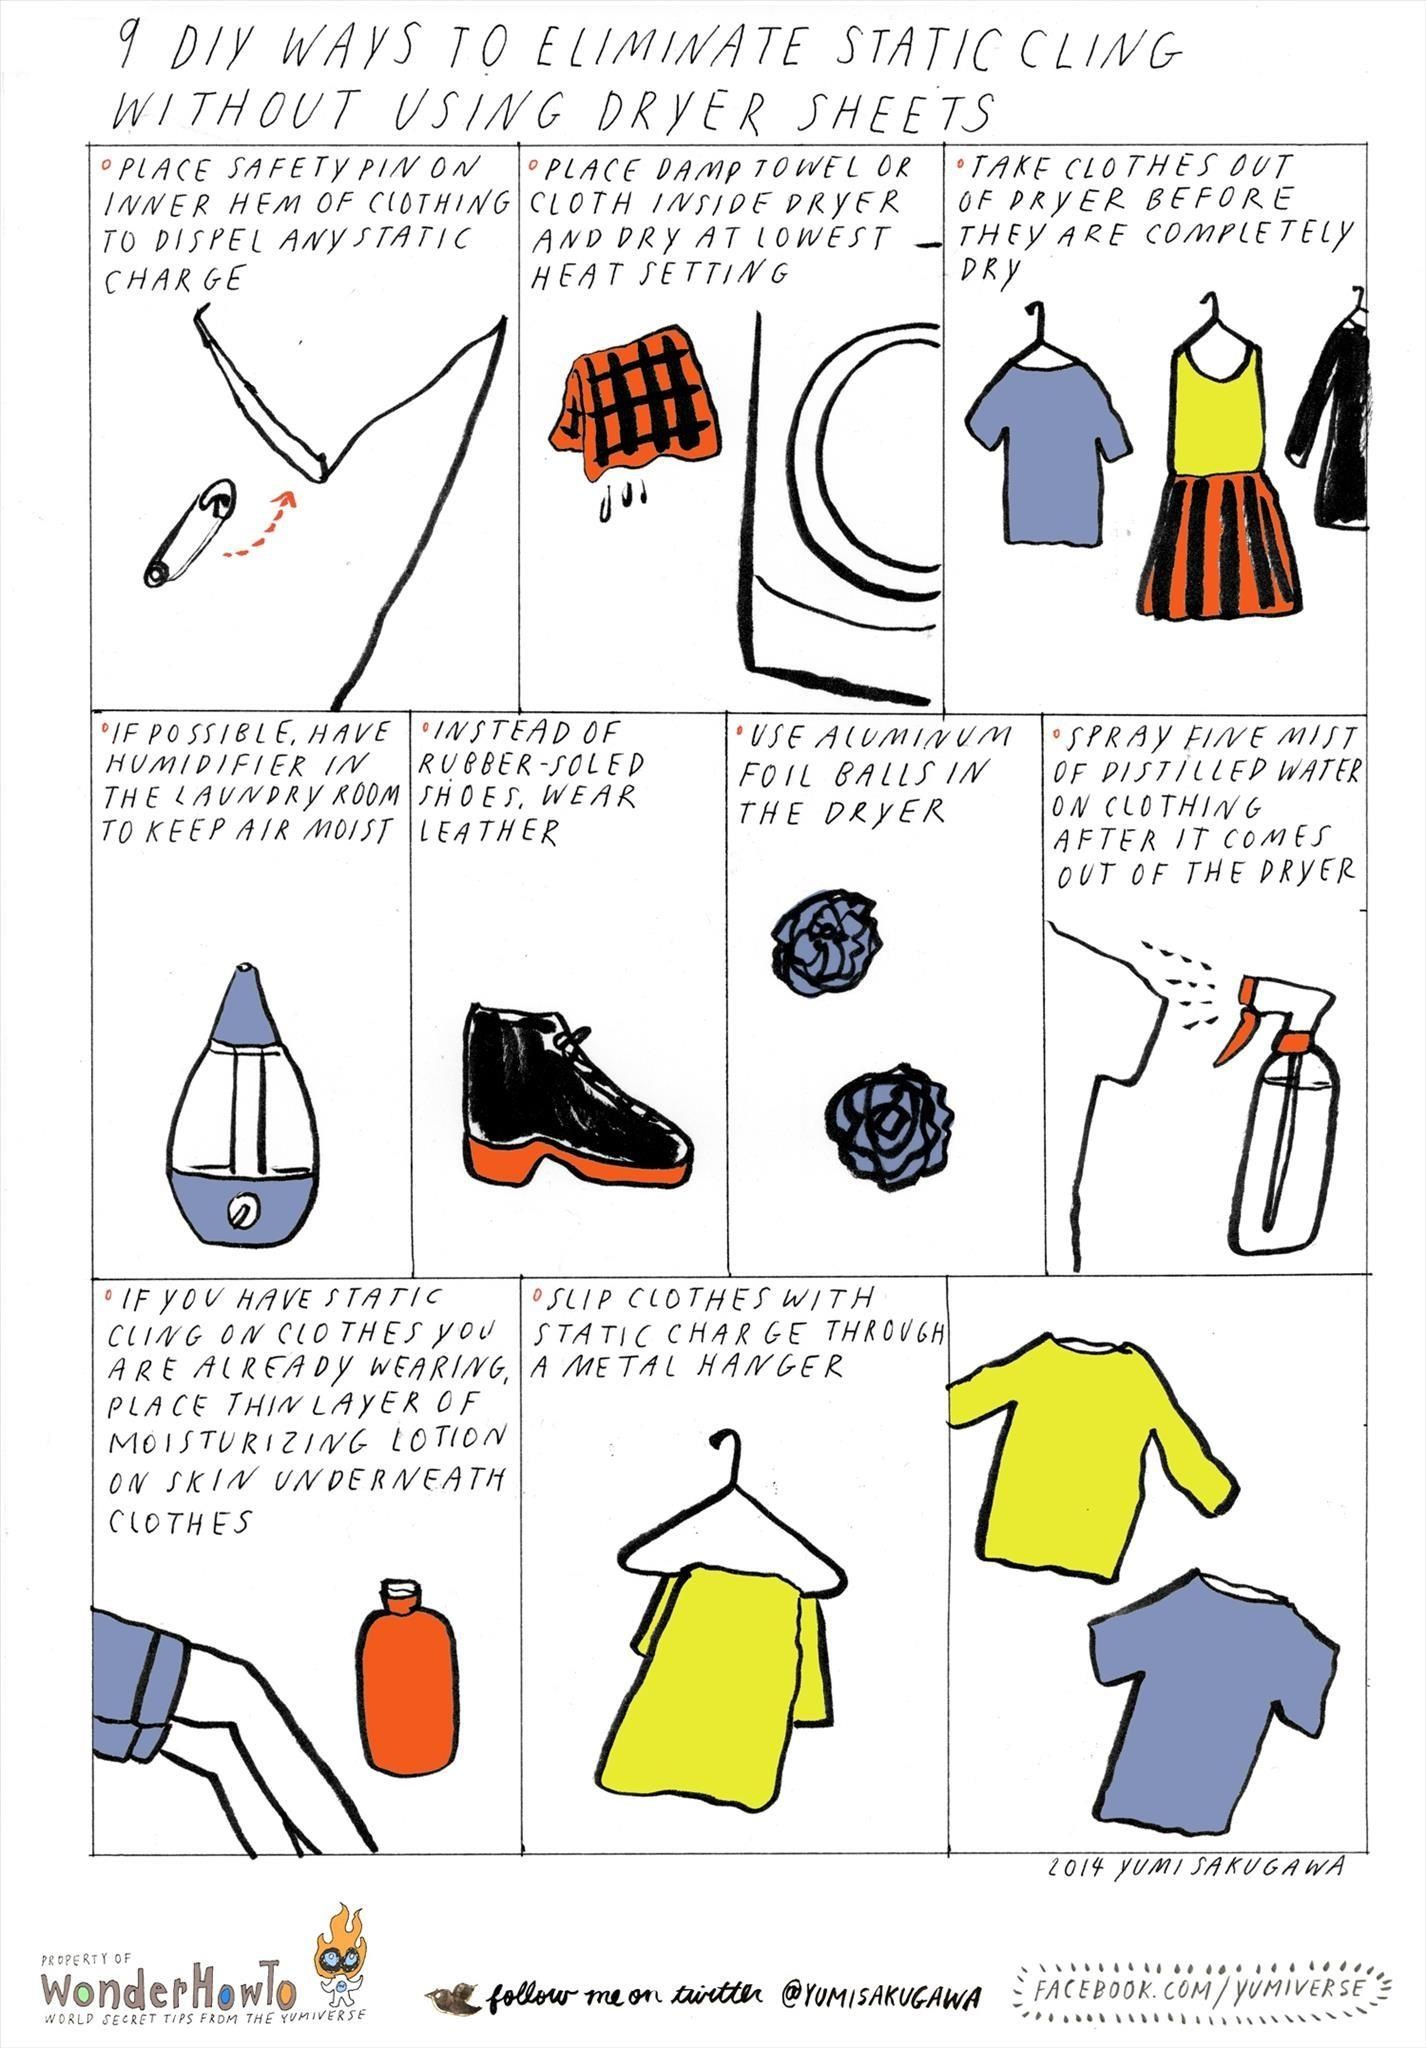 how to use dryer sheets to clean